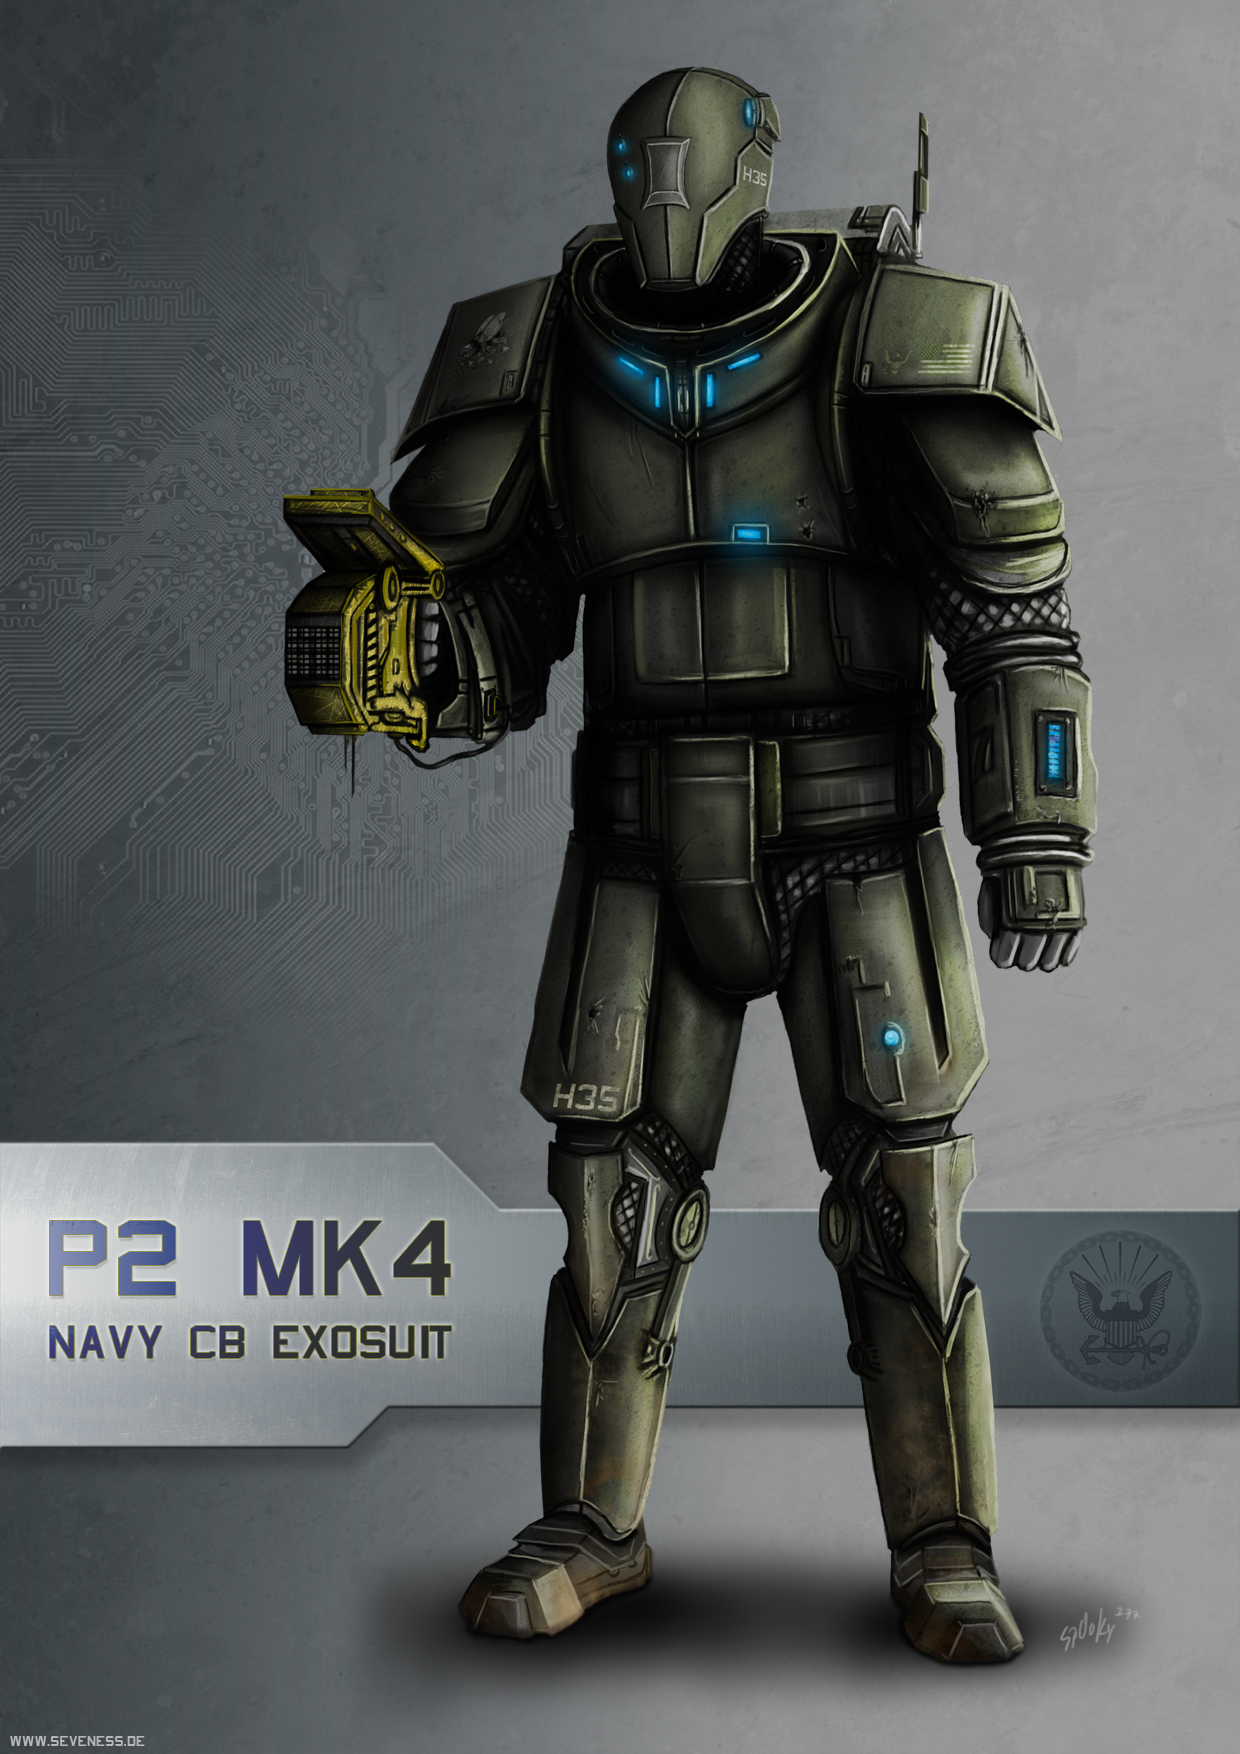 navy exosuit by SpOoKy777Military Exosuit